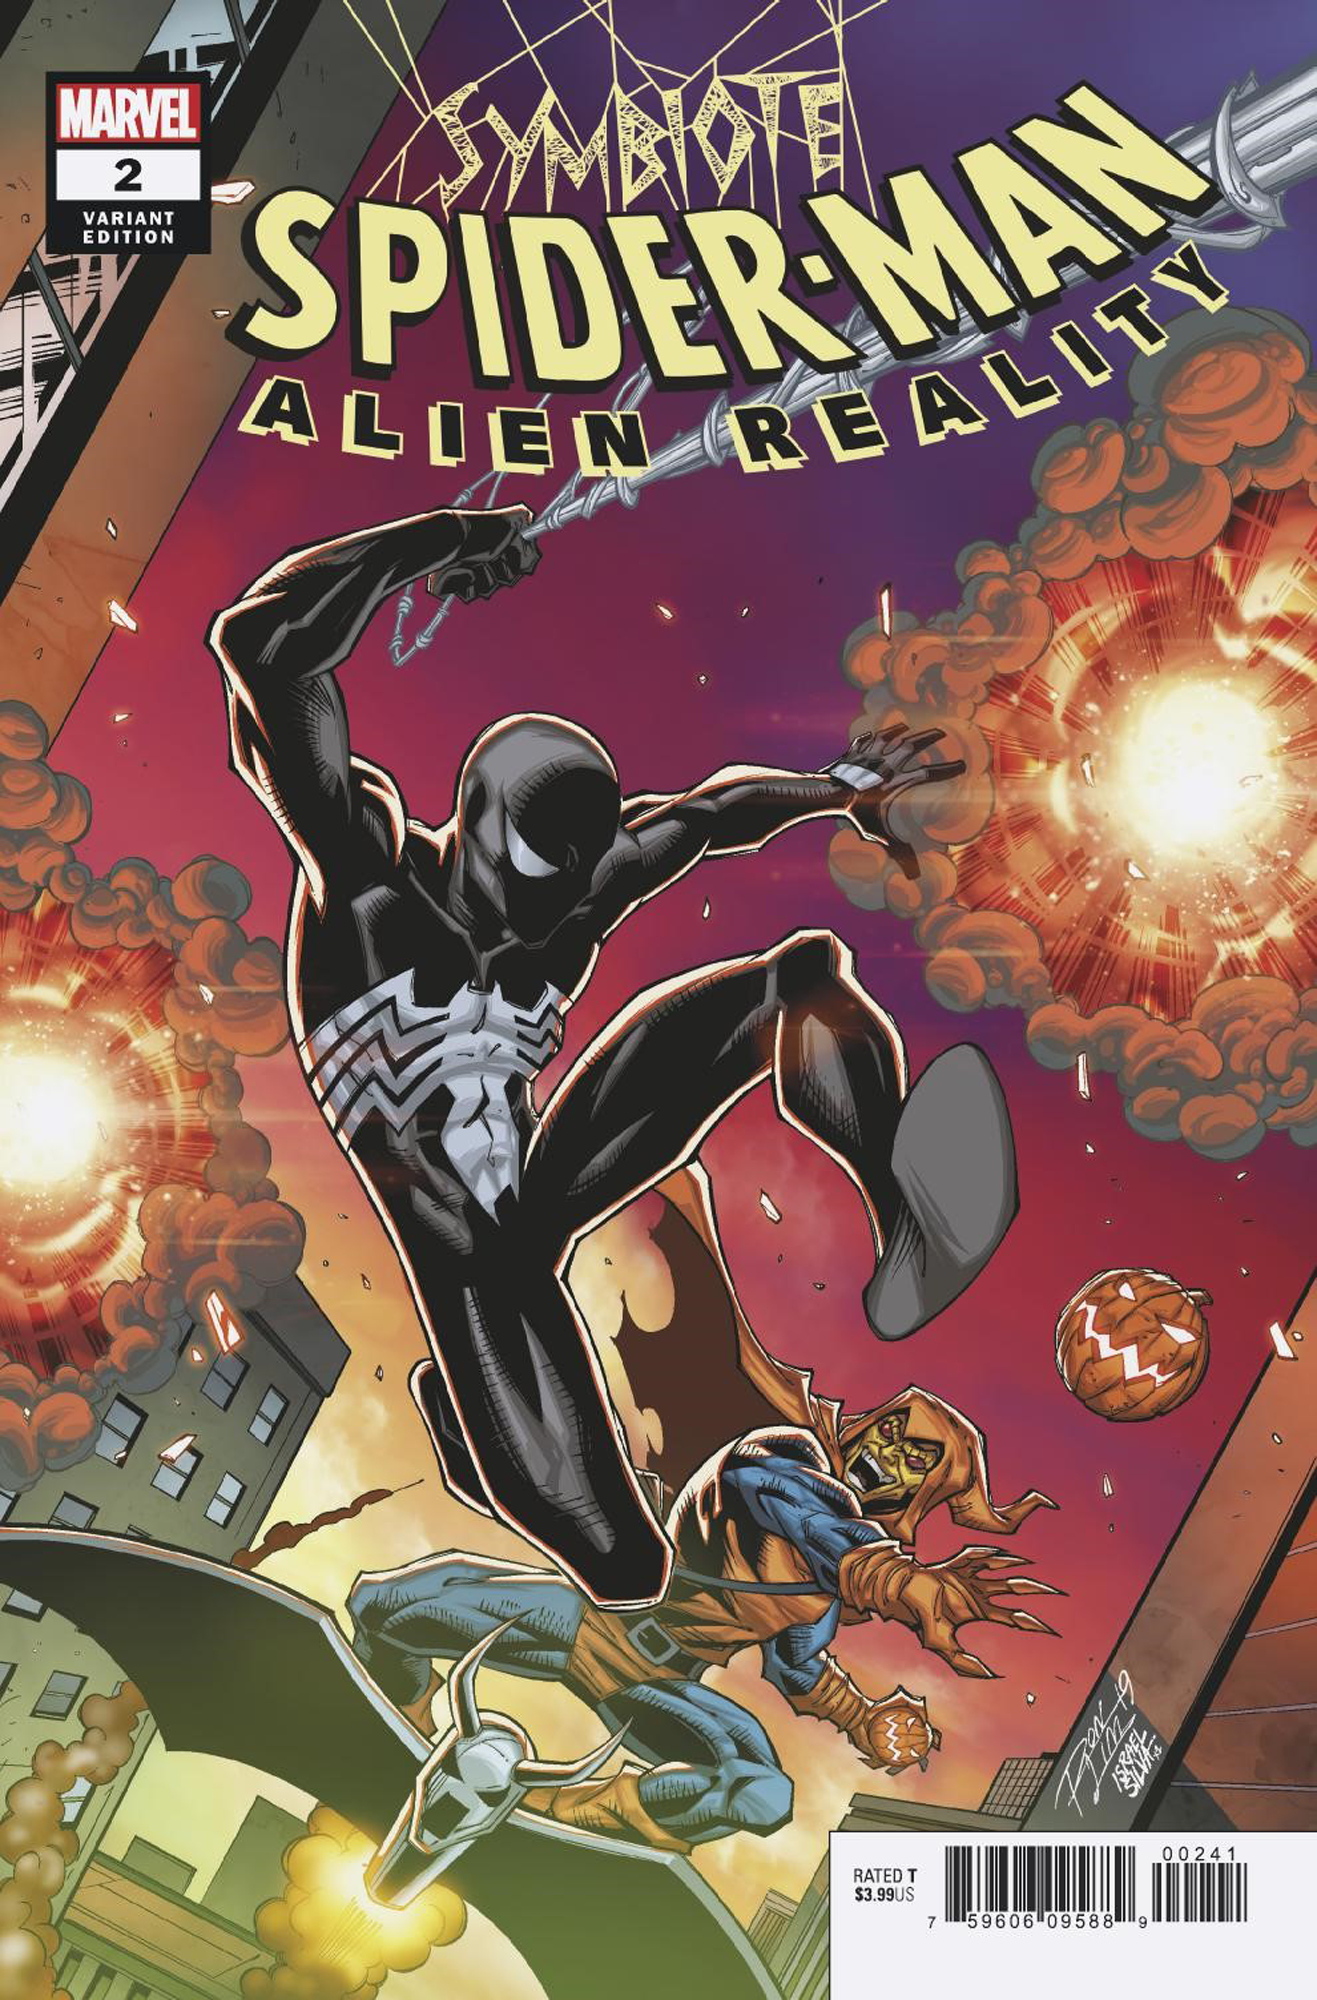 SYMBIOTE SPIDER-MAN ALIEN REALITY #2 (OF 5) RON LIM VAR